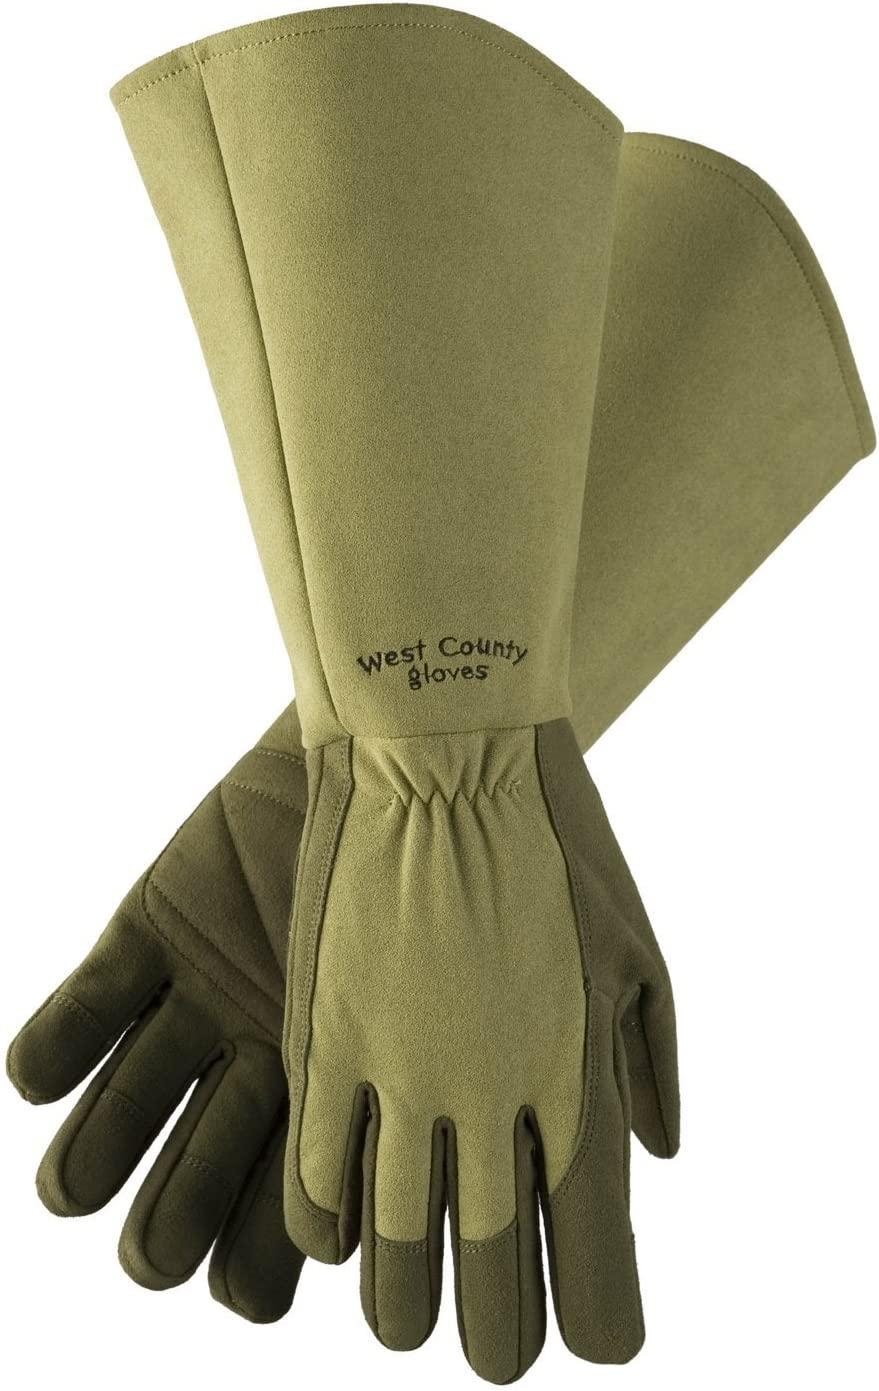 West Chester Protective Gear 054M/S West County Gardener Gauntlet Rose Gloves – Small, Moss, Gardening Gloves w/Elastic Wrist, Reinforced Fingers, Palm, and Thumb